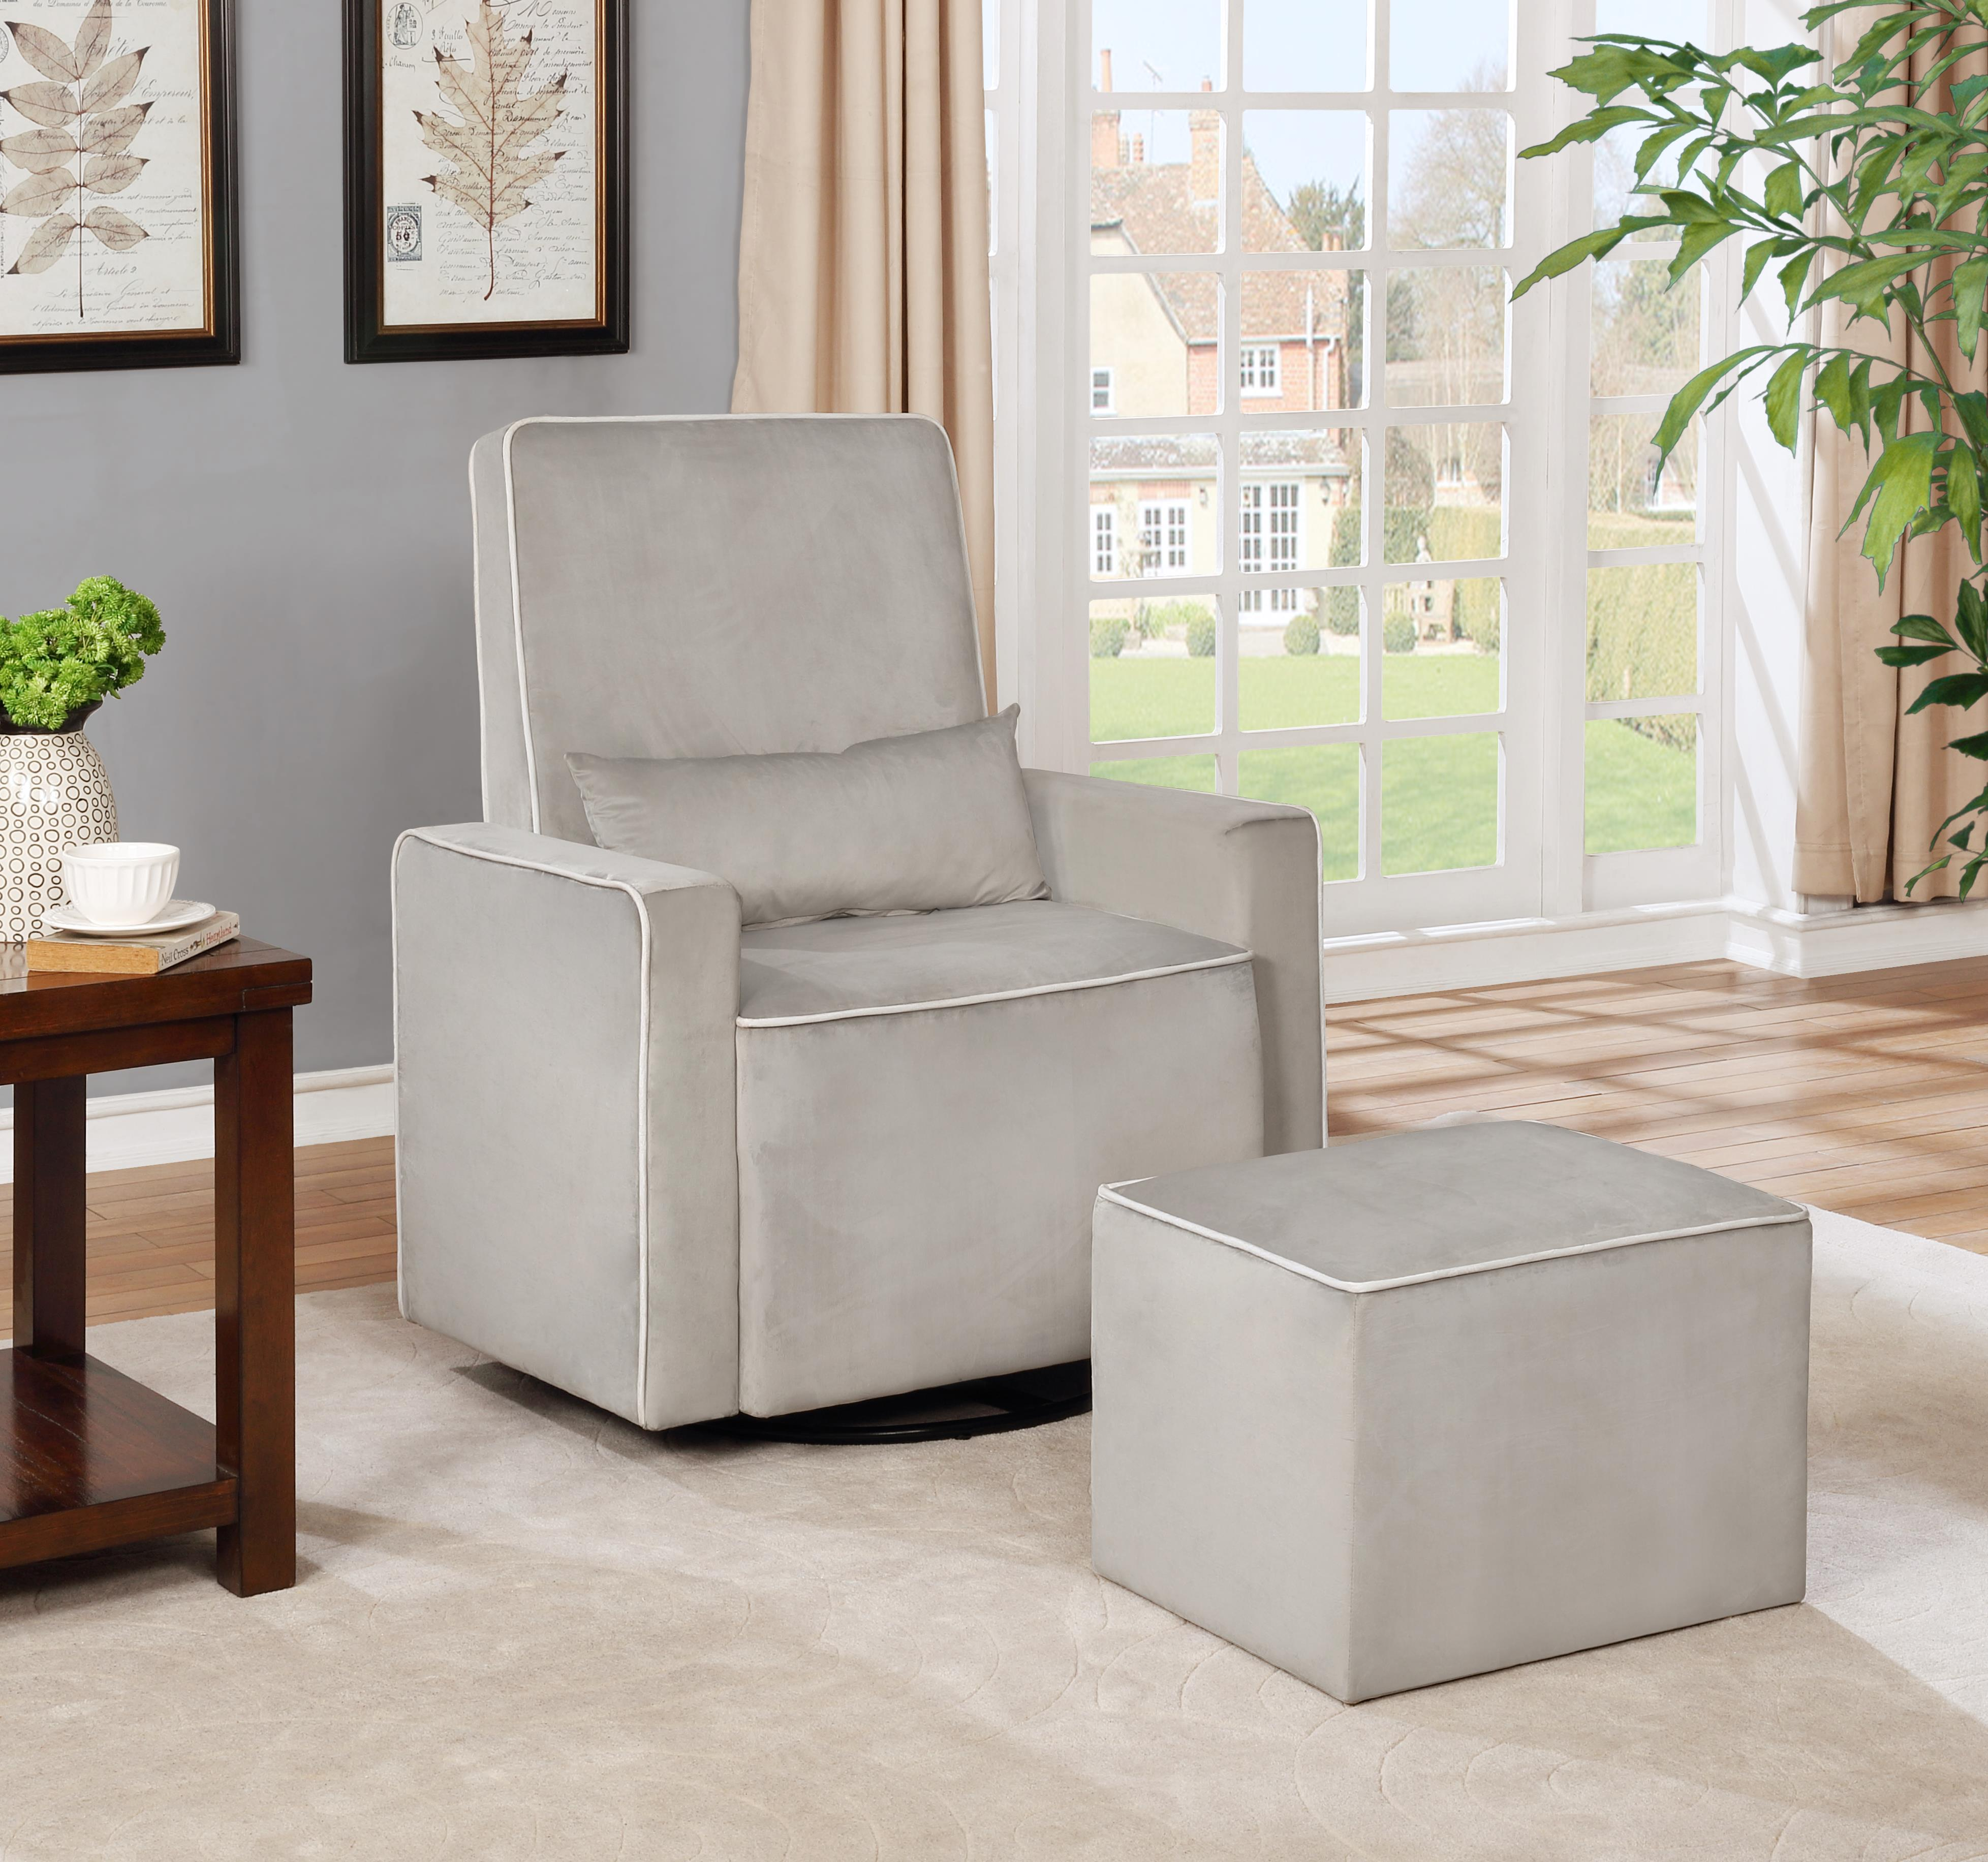 Lorraine Swivel Glider and Ottoman Set-Color:Cream,Material:Microfiber